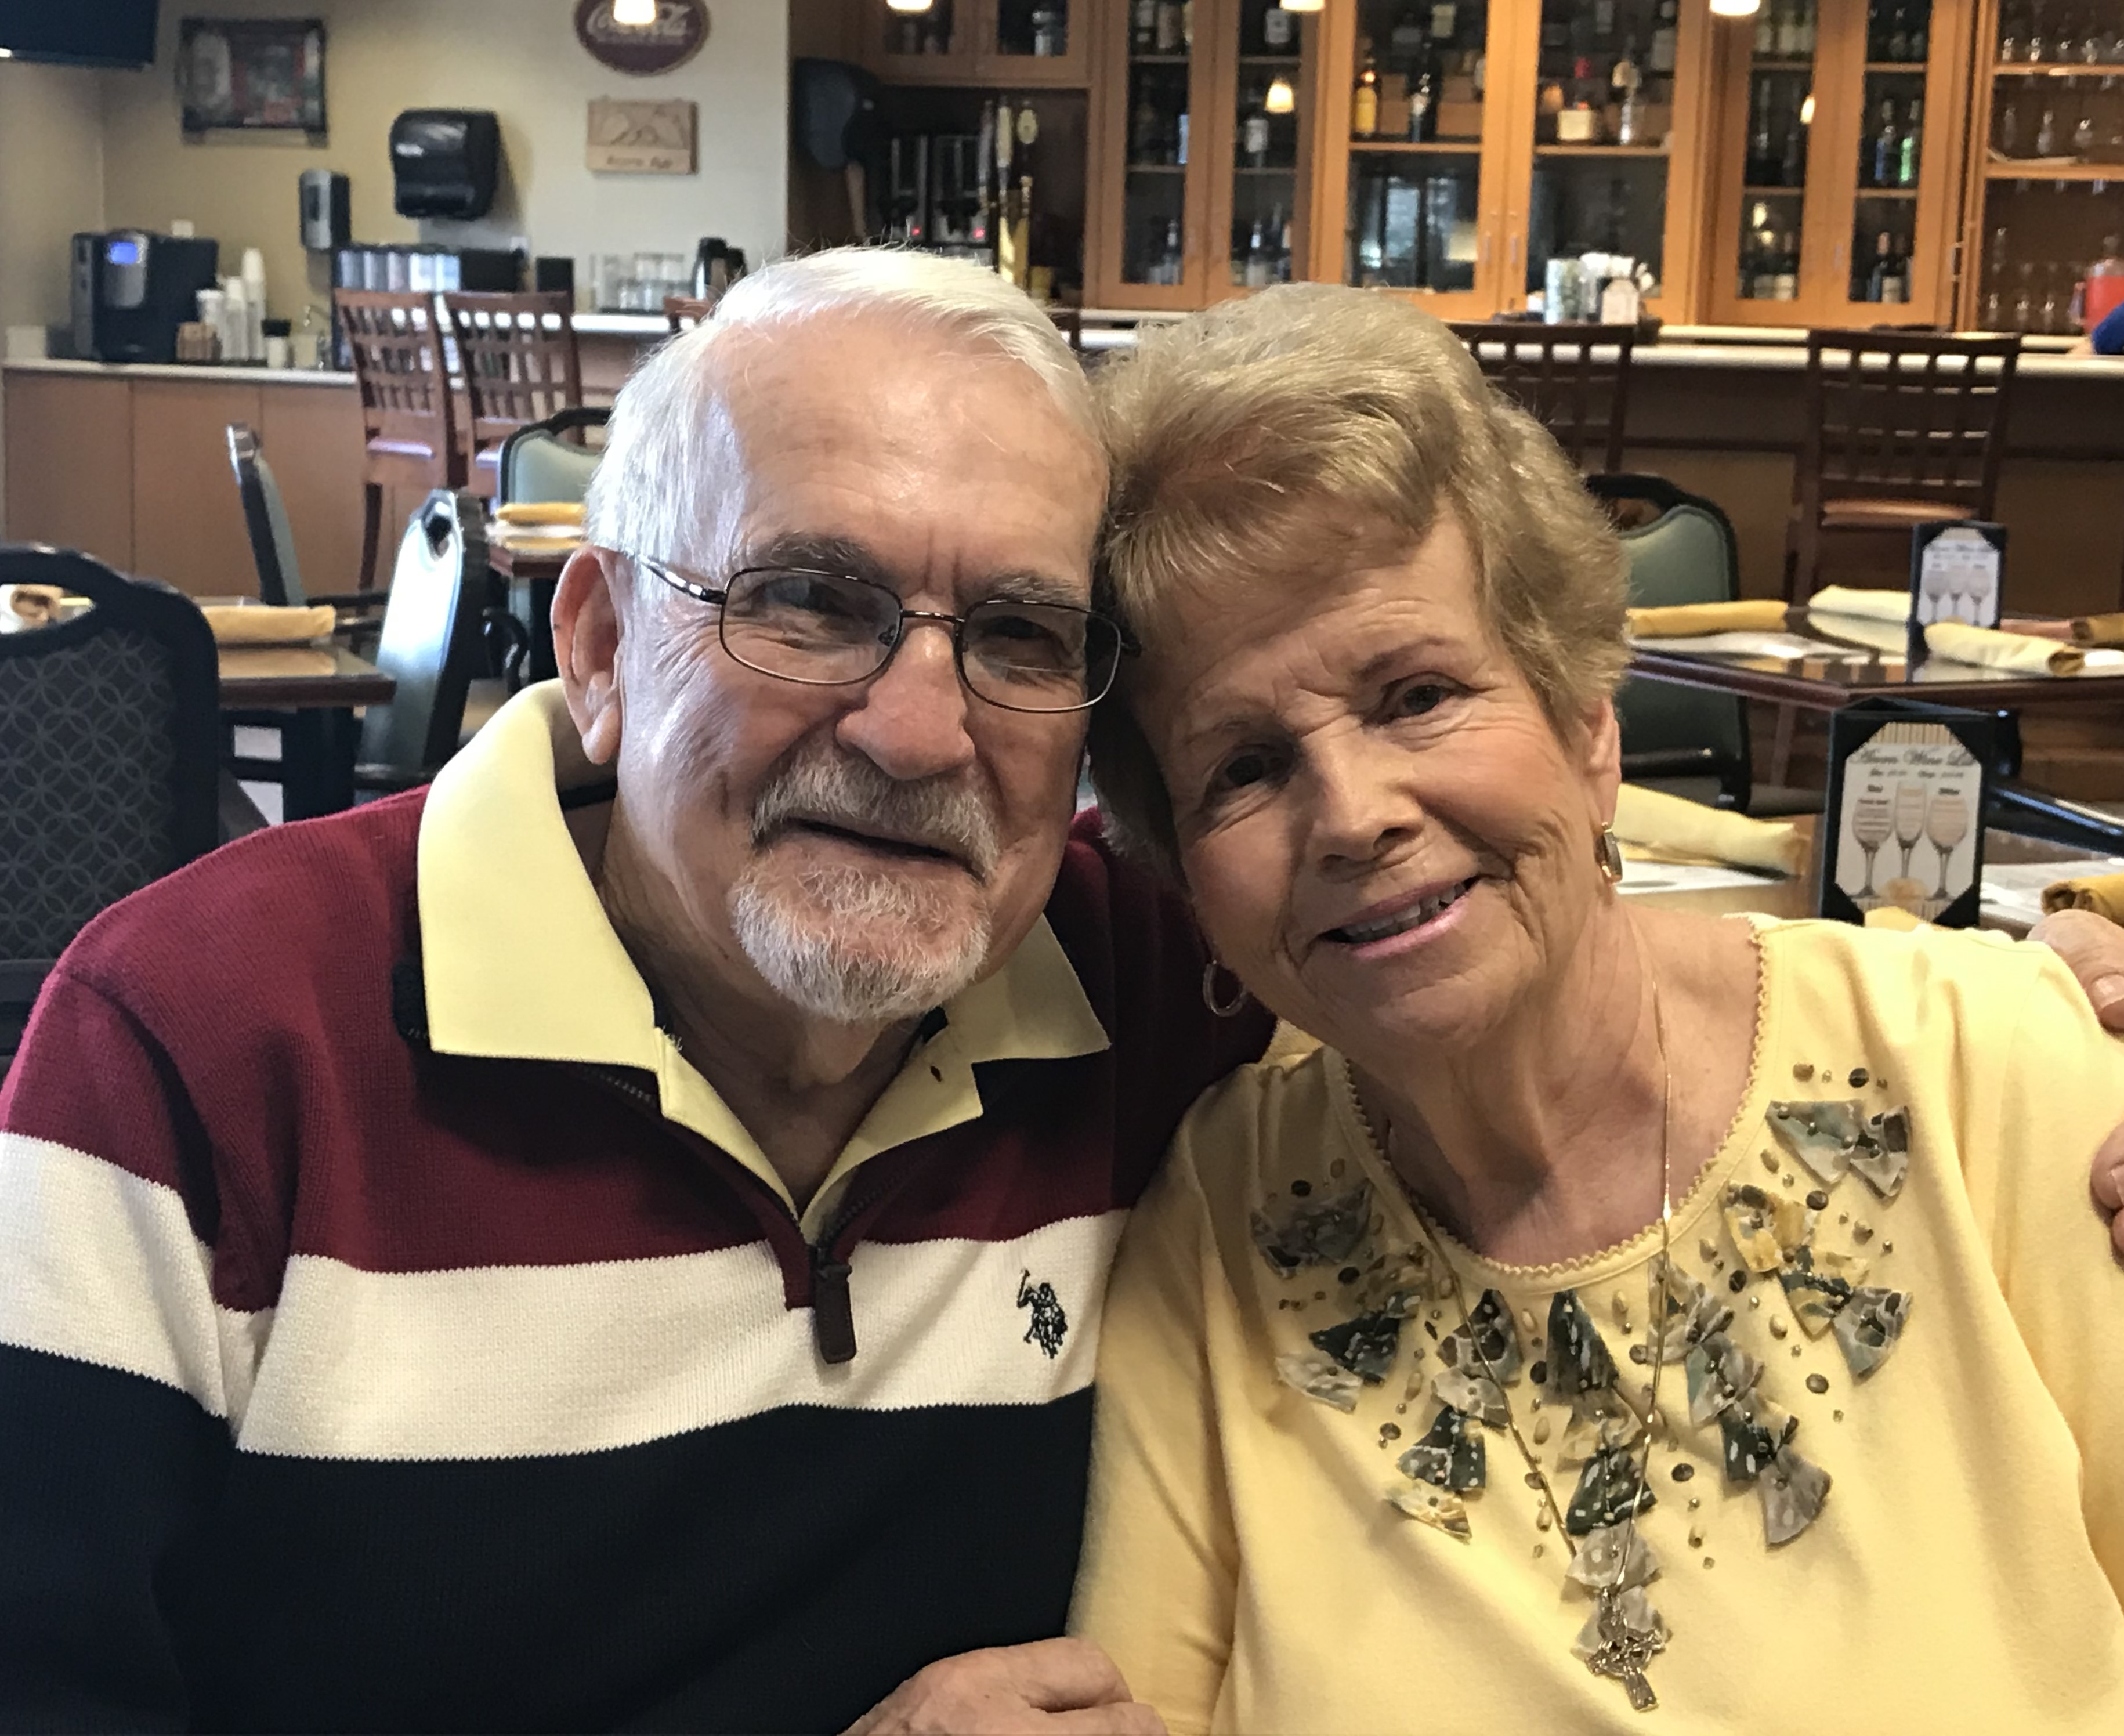 Oak Crest residents George and Kathy Wilson are pictured in the Acorn Pub.